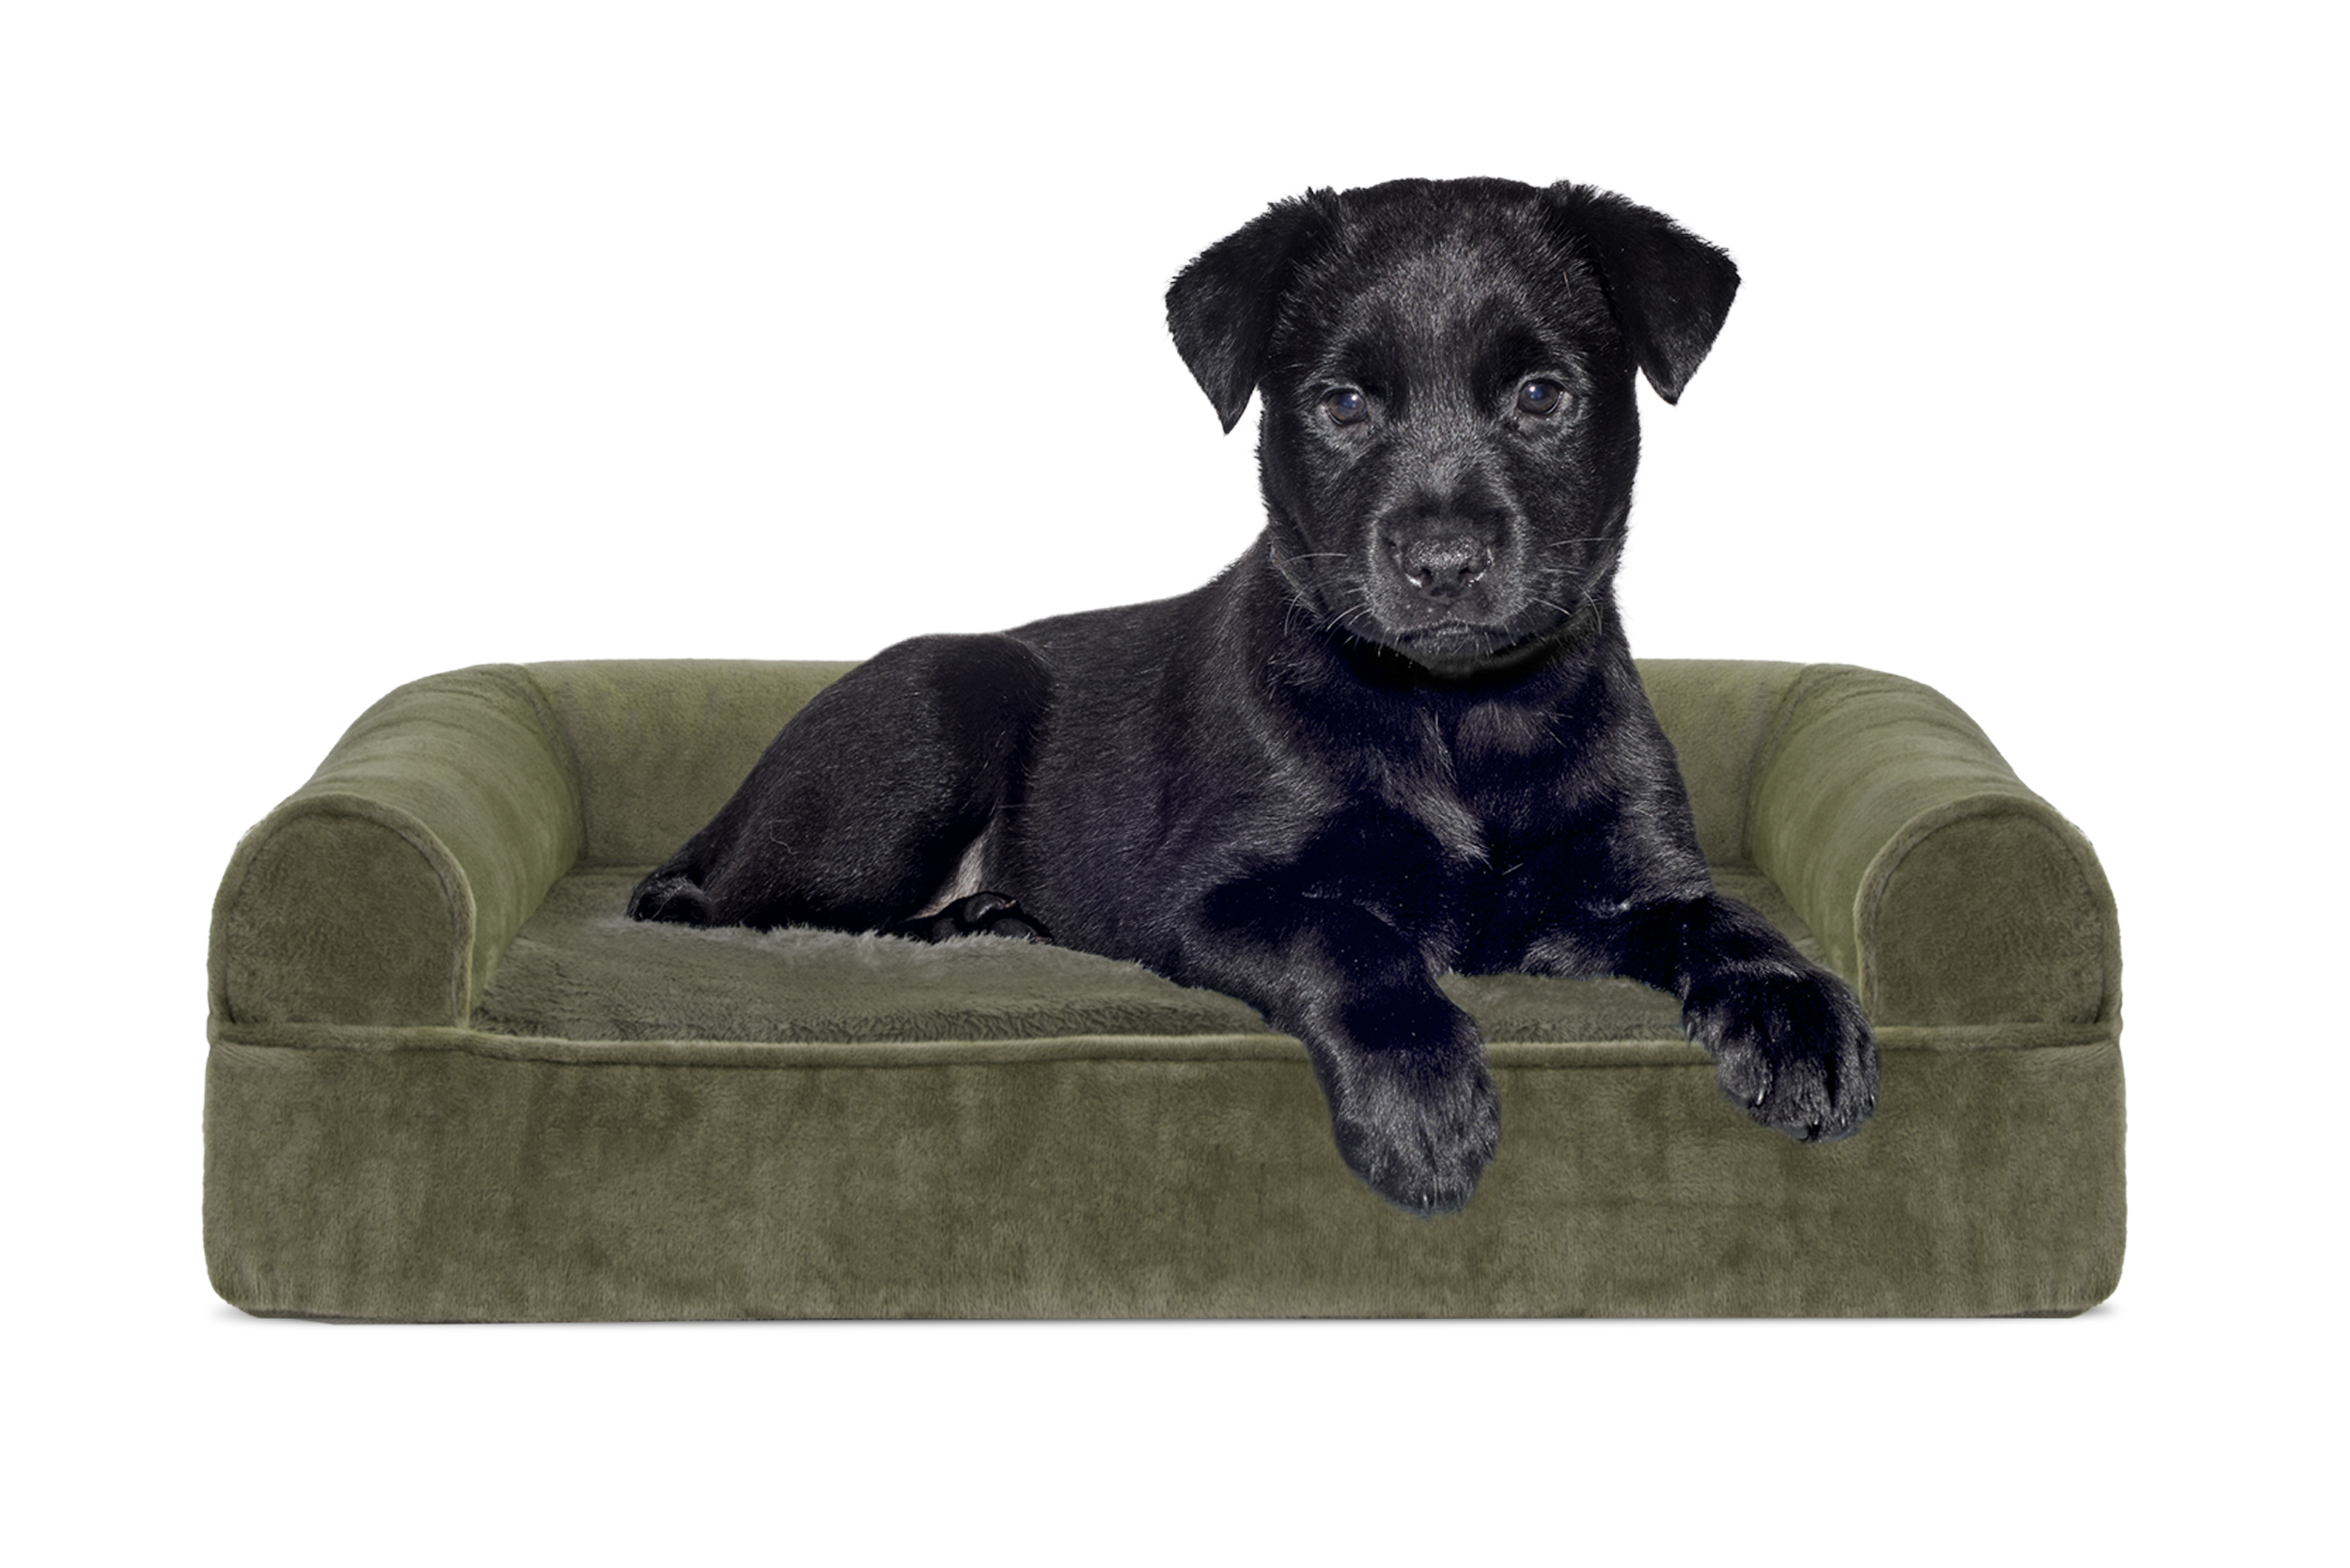 Faux Fur Amp Velvet Orthopedic Sofa Pet Bed Dog Couch Ebay